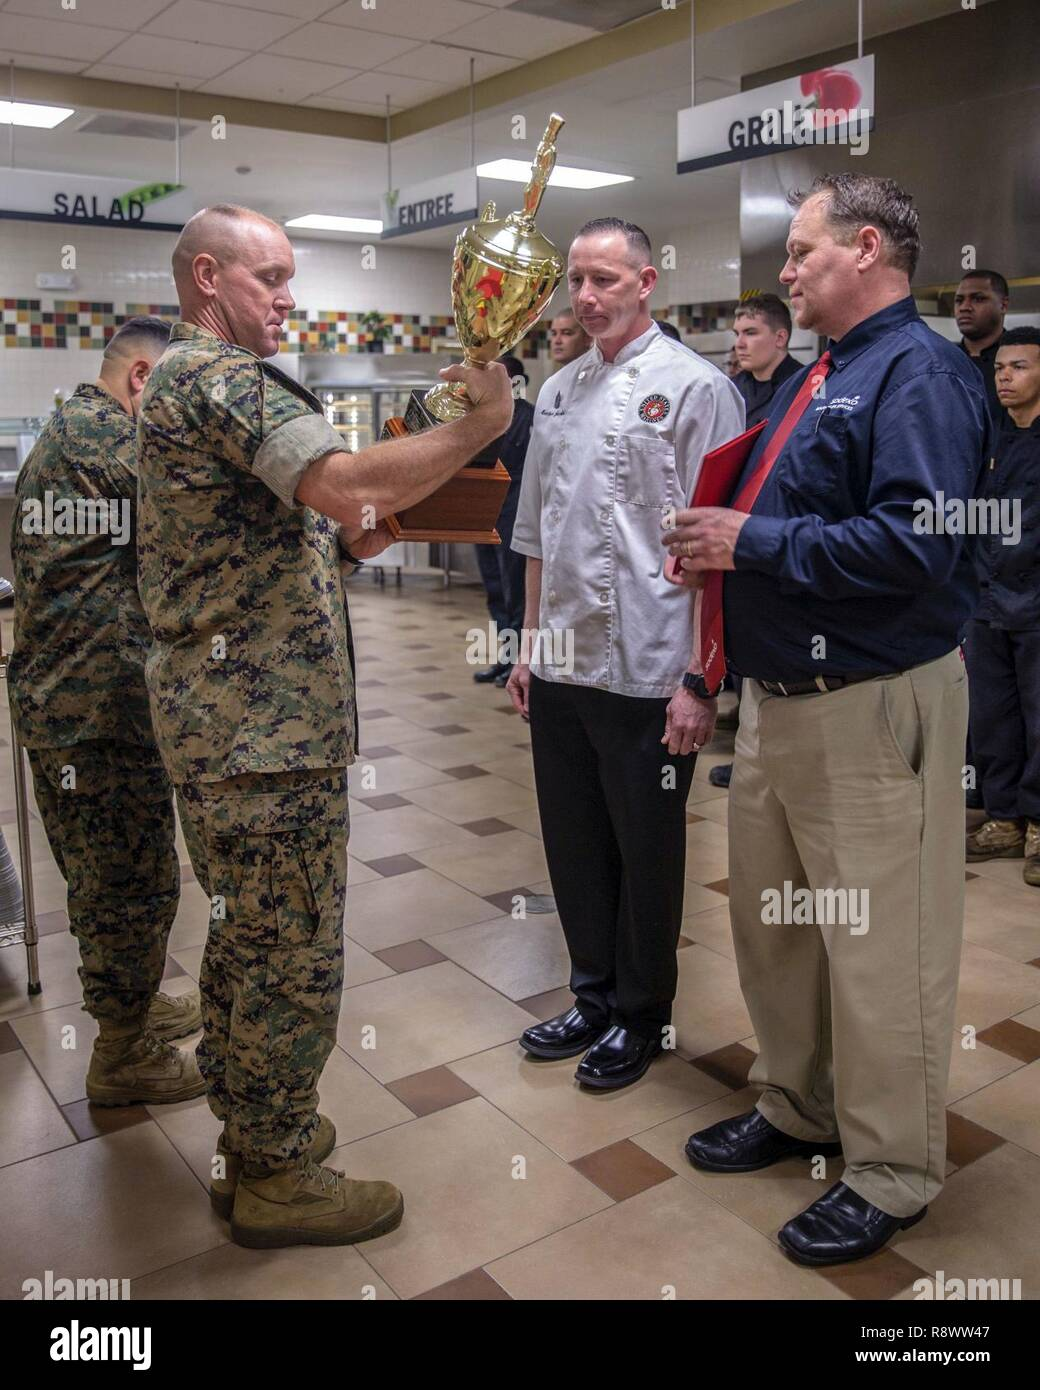 U.S. Marine Corps Col. Scott A. Baldwin, left, assistant chief of staff, Marine Corps Installations Command, presents Master Sgt. Matthew J. Jacobs, regimental mess chief, 2nd Marine Division, with a trophy for the Marine and Mess Attendant Award during an award ceremony for best full food service mess hall in the Marine Corps, Camp Lejeune, N.C., March 14, 2017. The mess halls were judged on factors such as cleanliness, recipe compliance, quality of food, teamwork, execution and training. - Stock Image